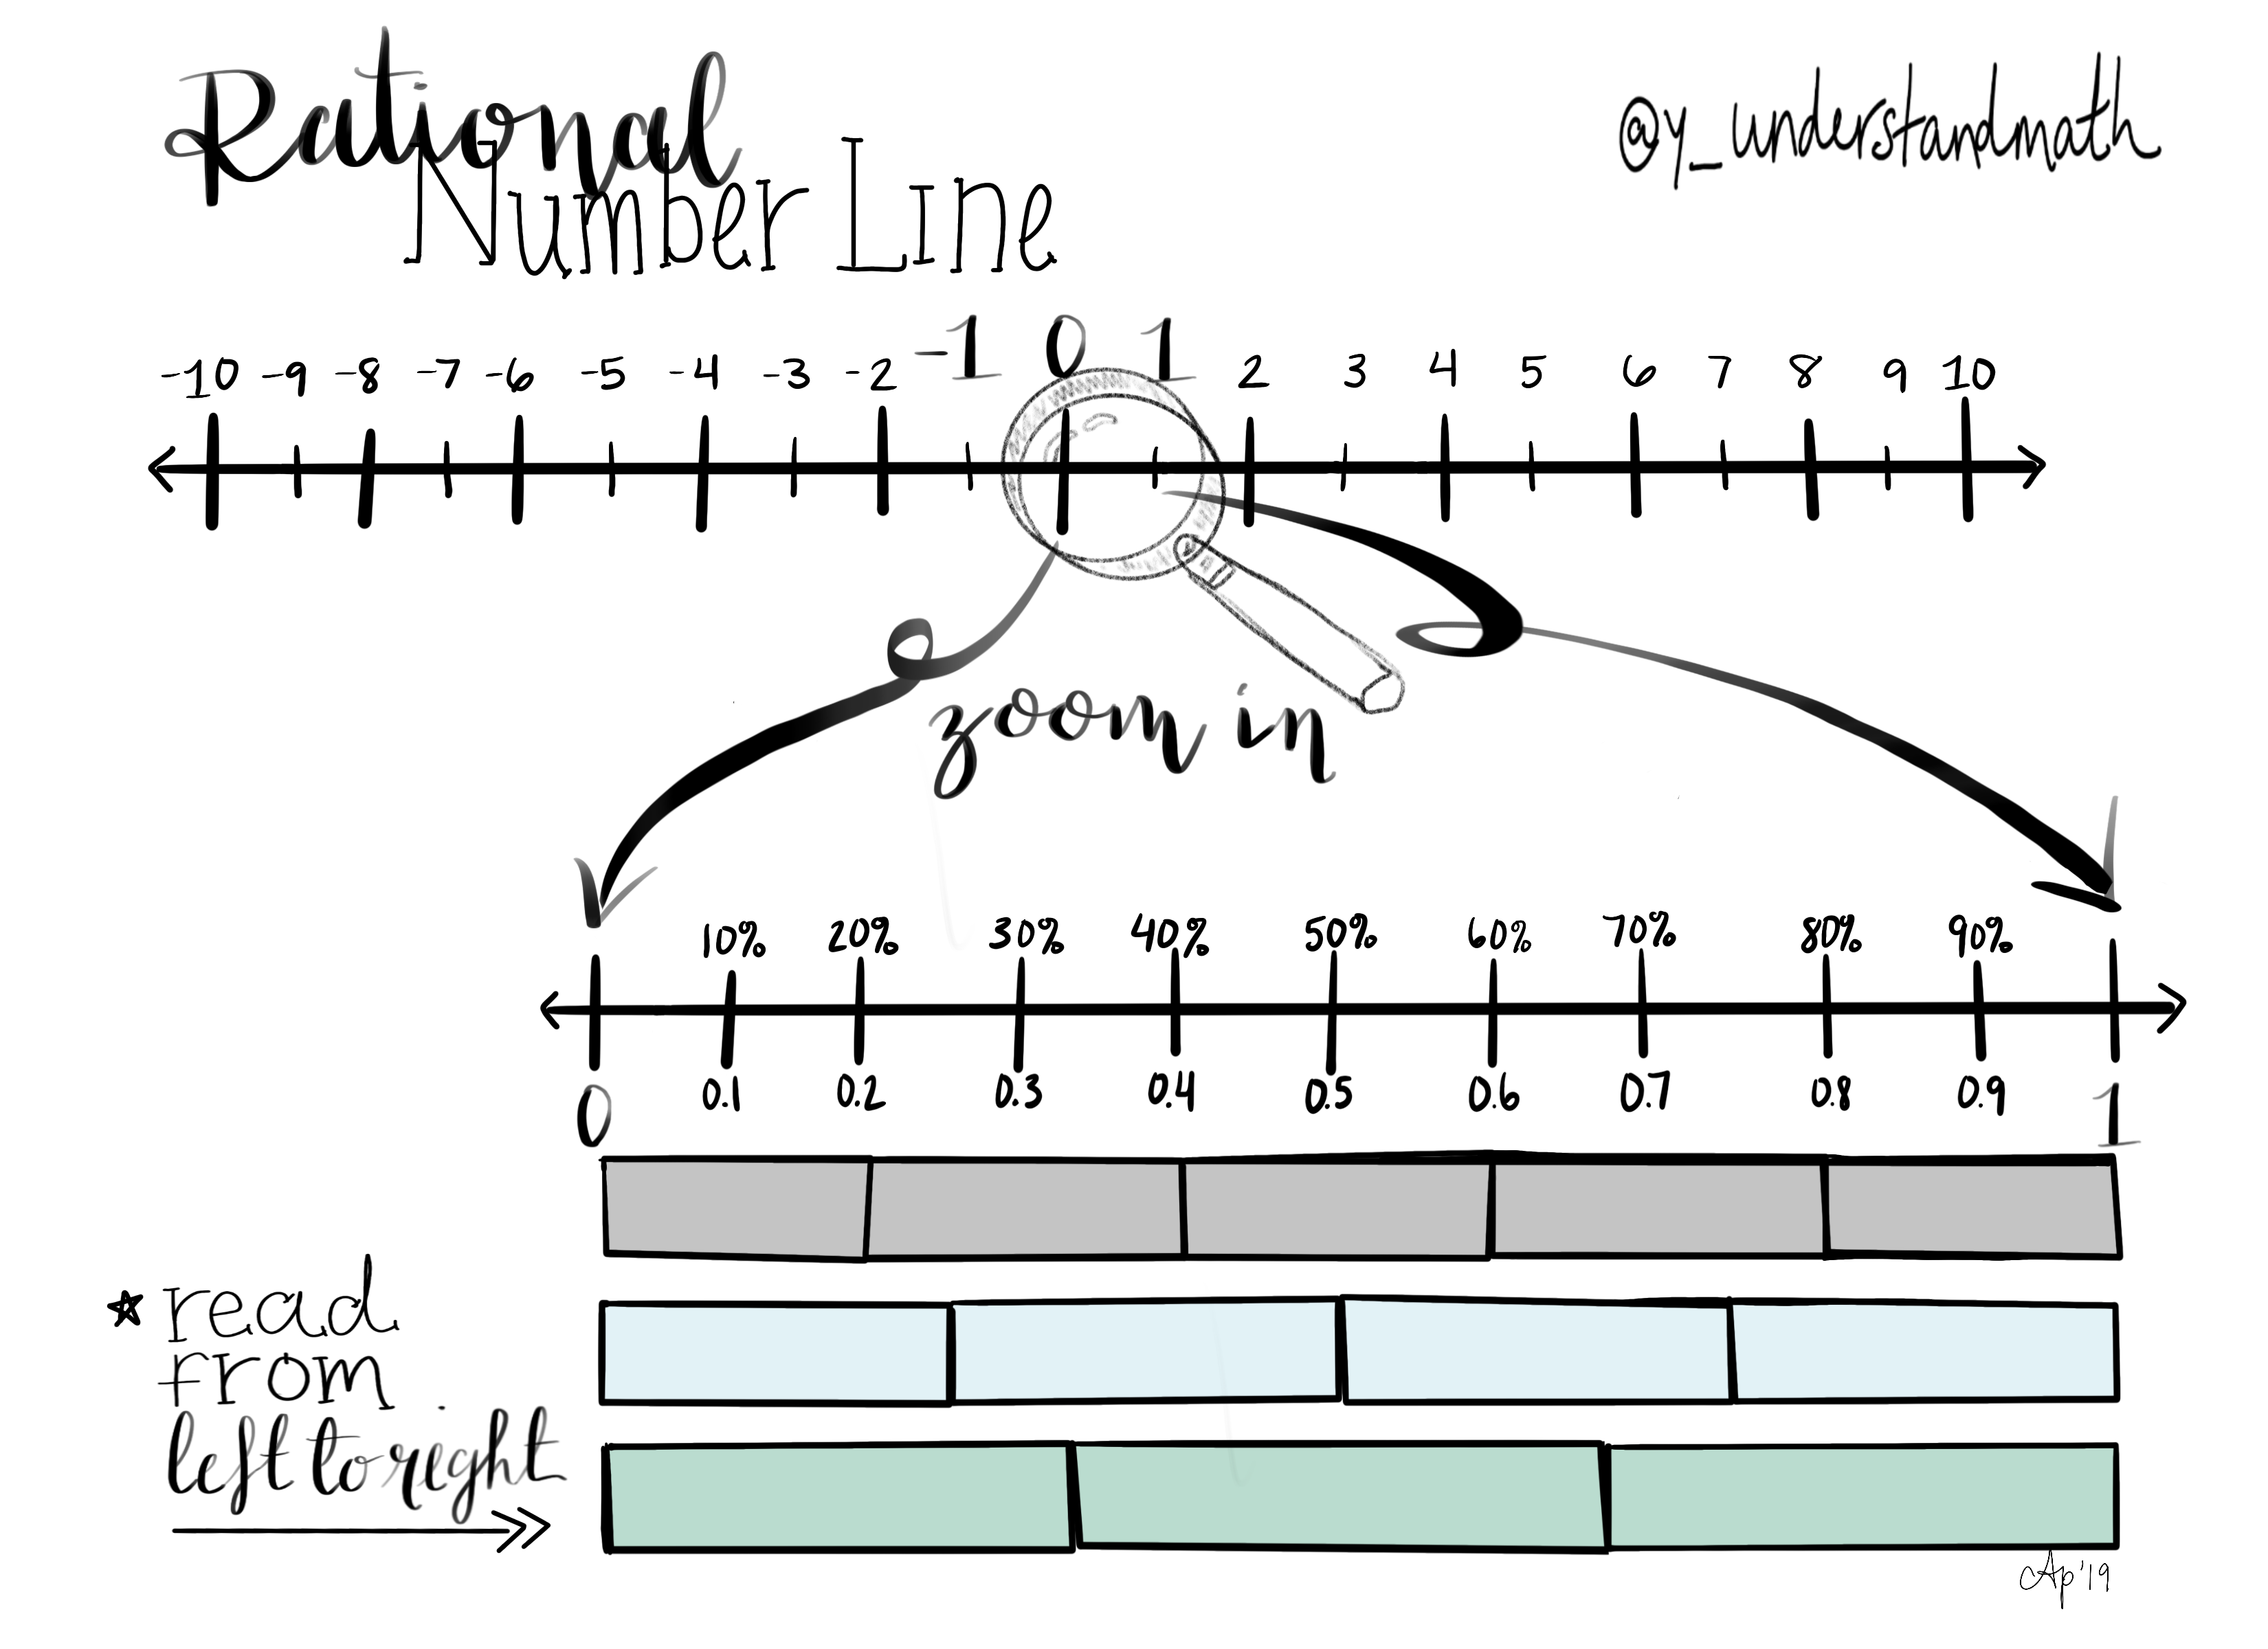 This Number Line Can Be Printed As A Graphic Organizer To